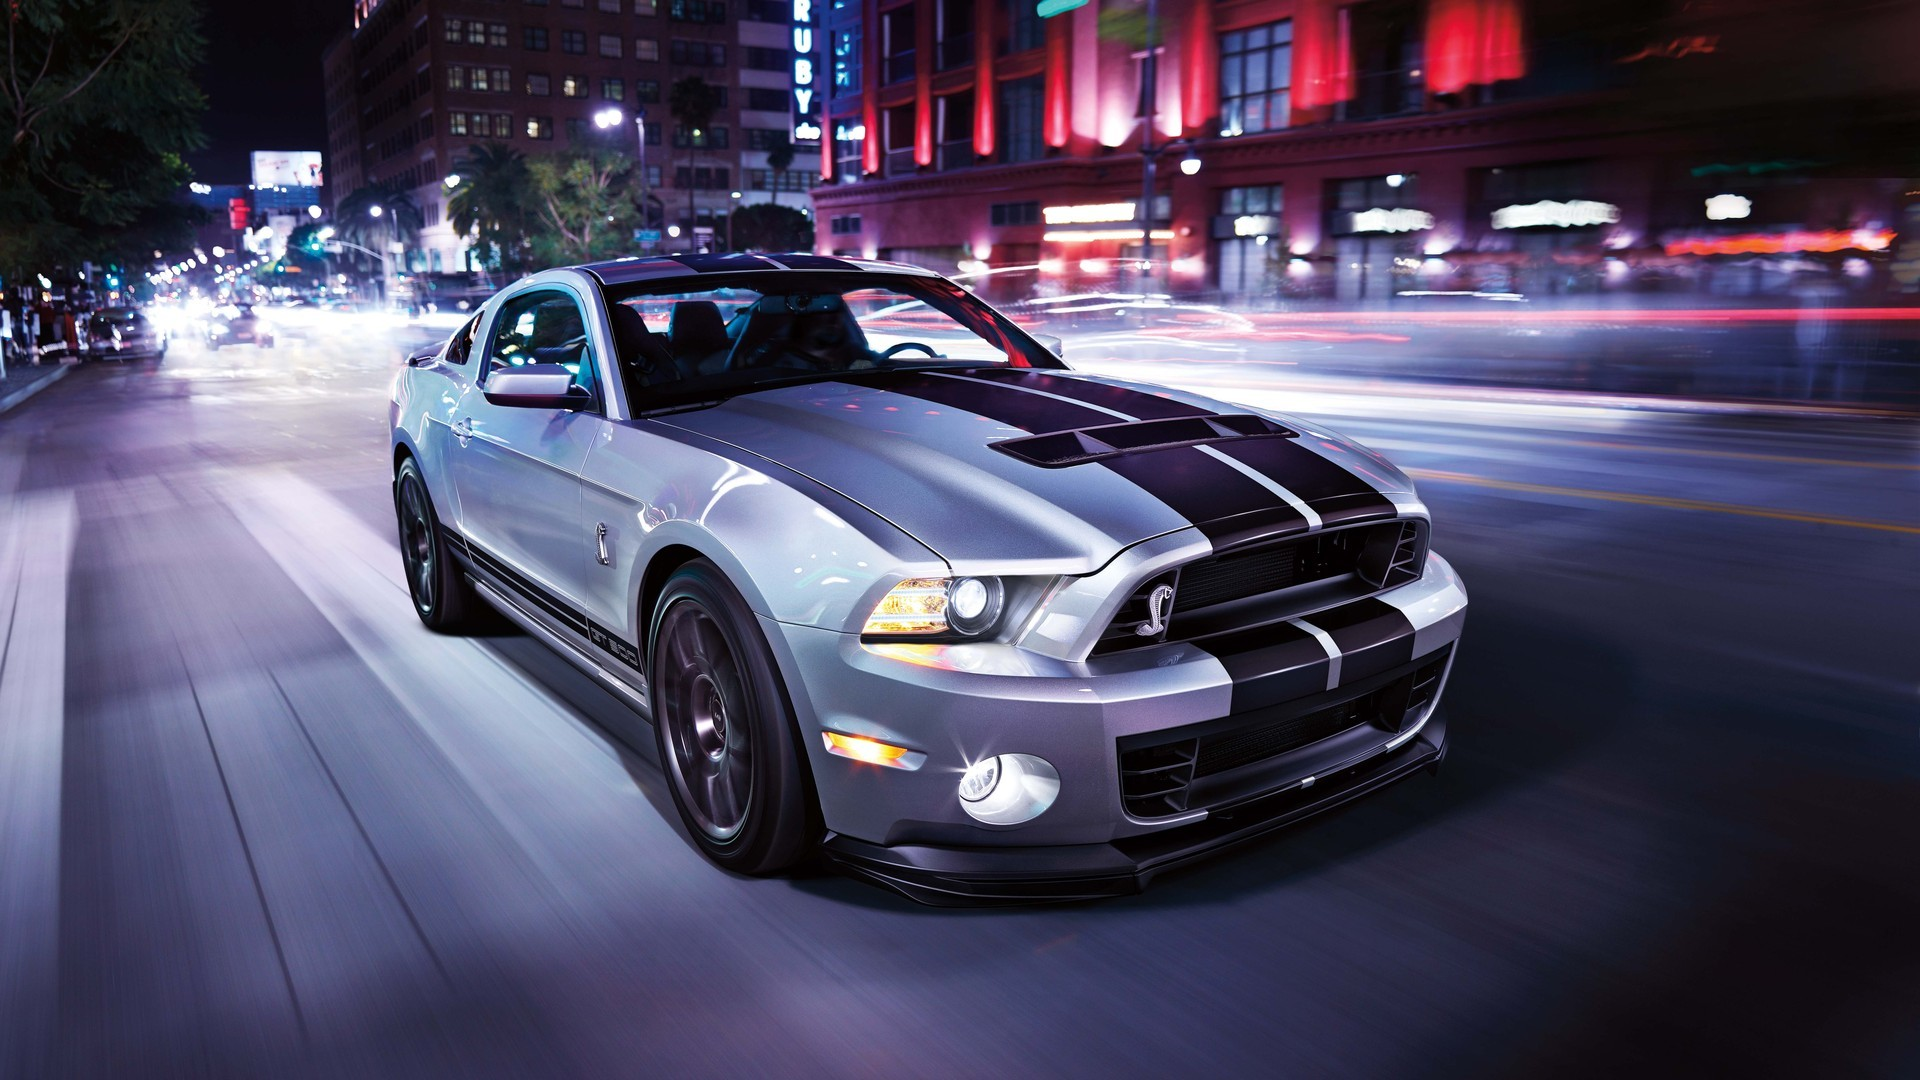 FordMustang Photos Download FordMustang Wallpapers Download